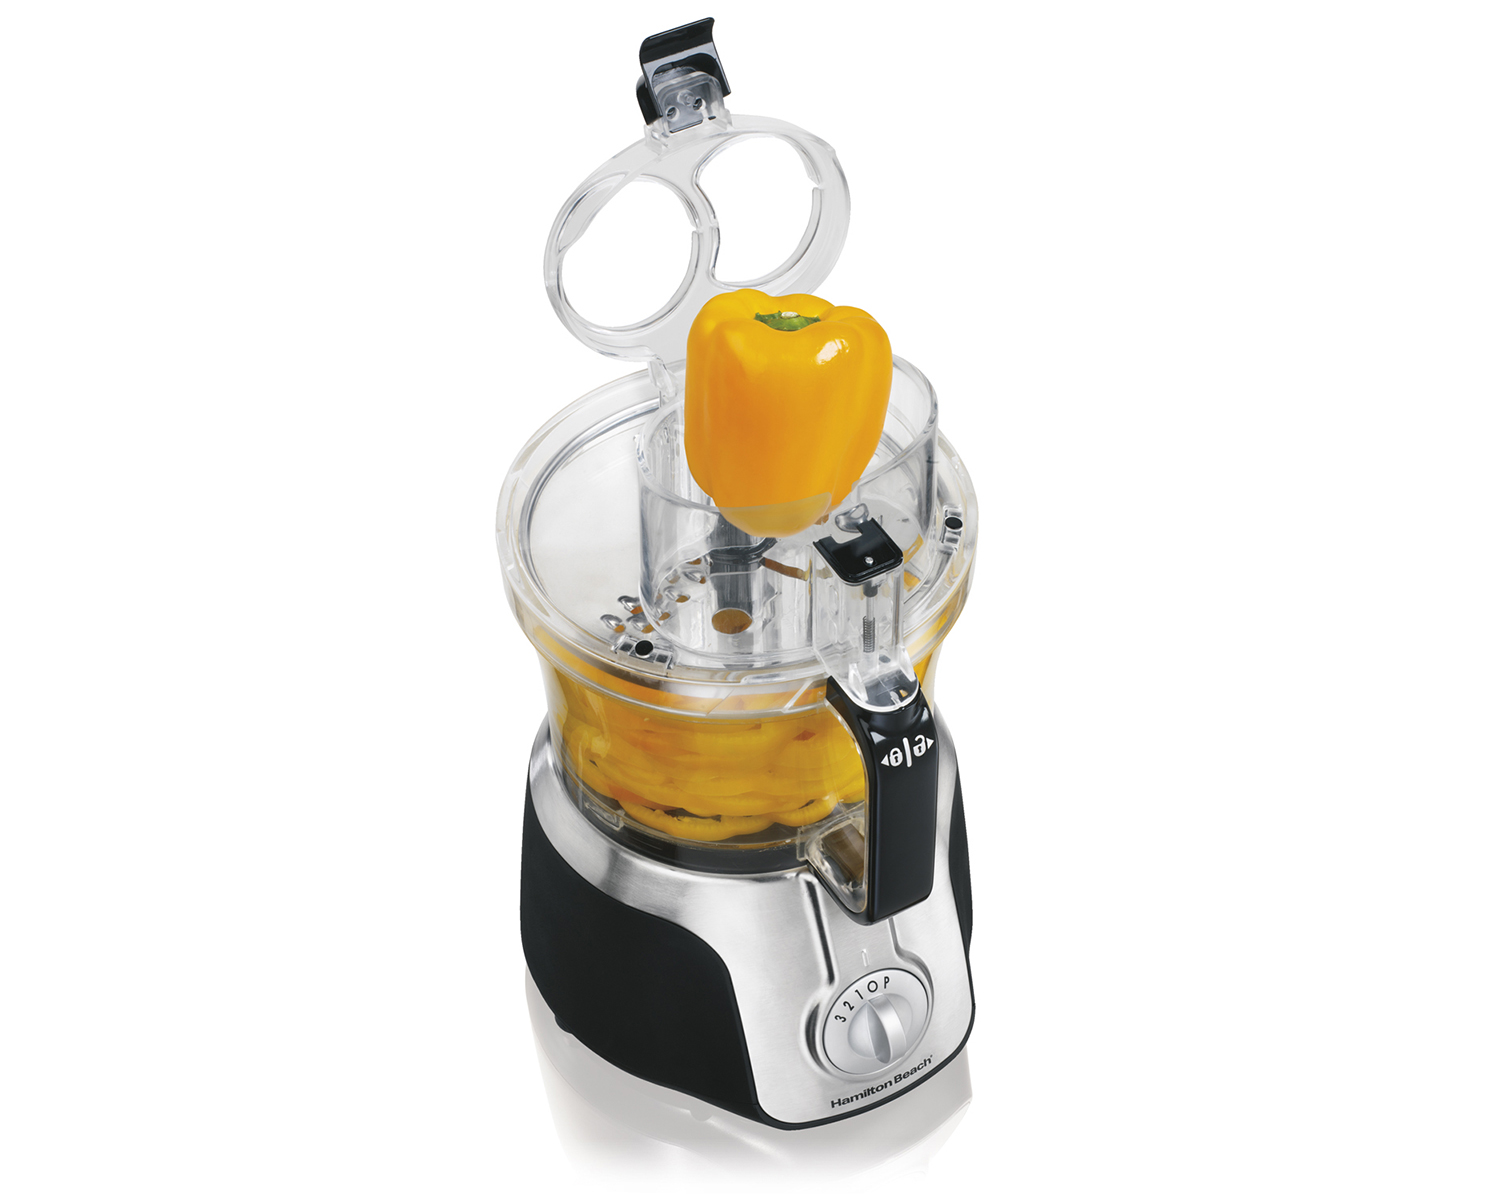 Big Mouth® Duo 14 Cup Food Processor with Second Bowl (70579)